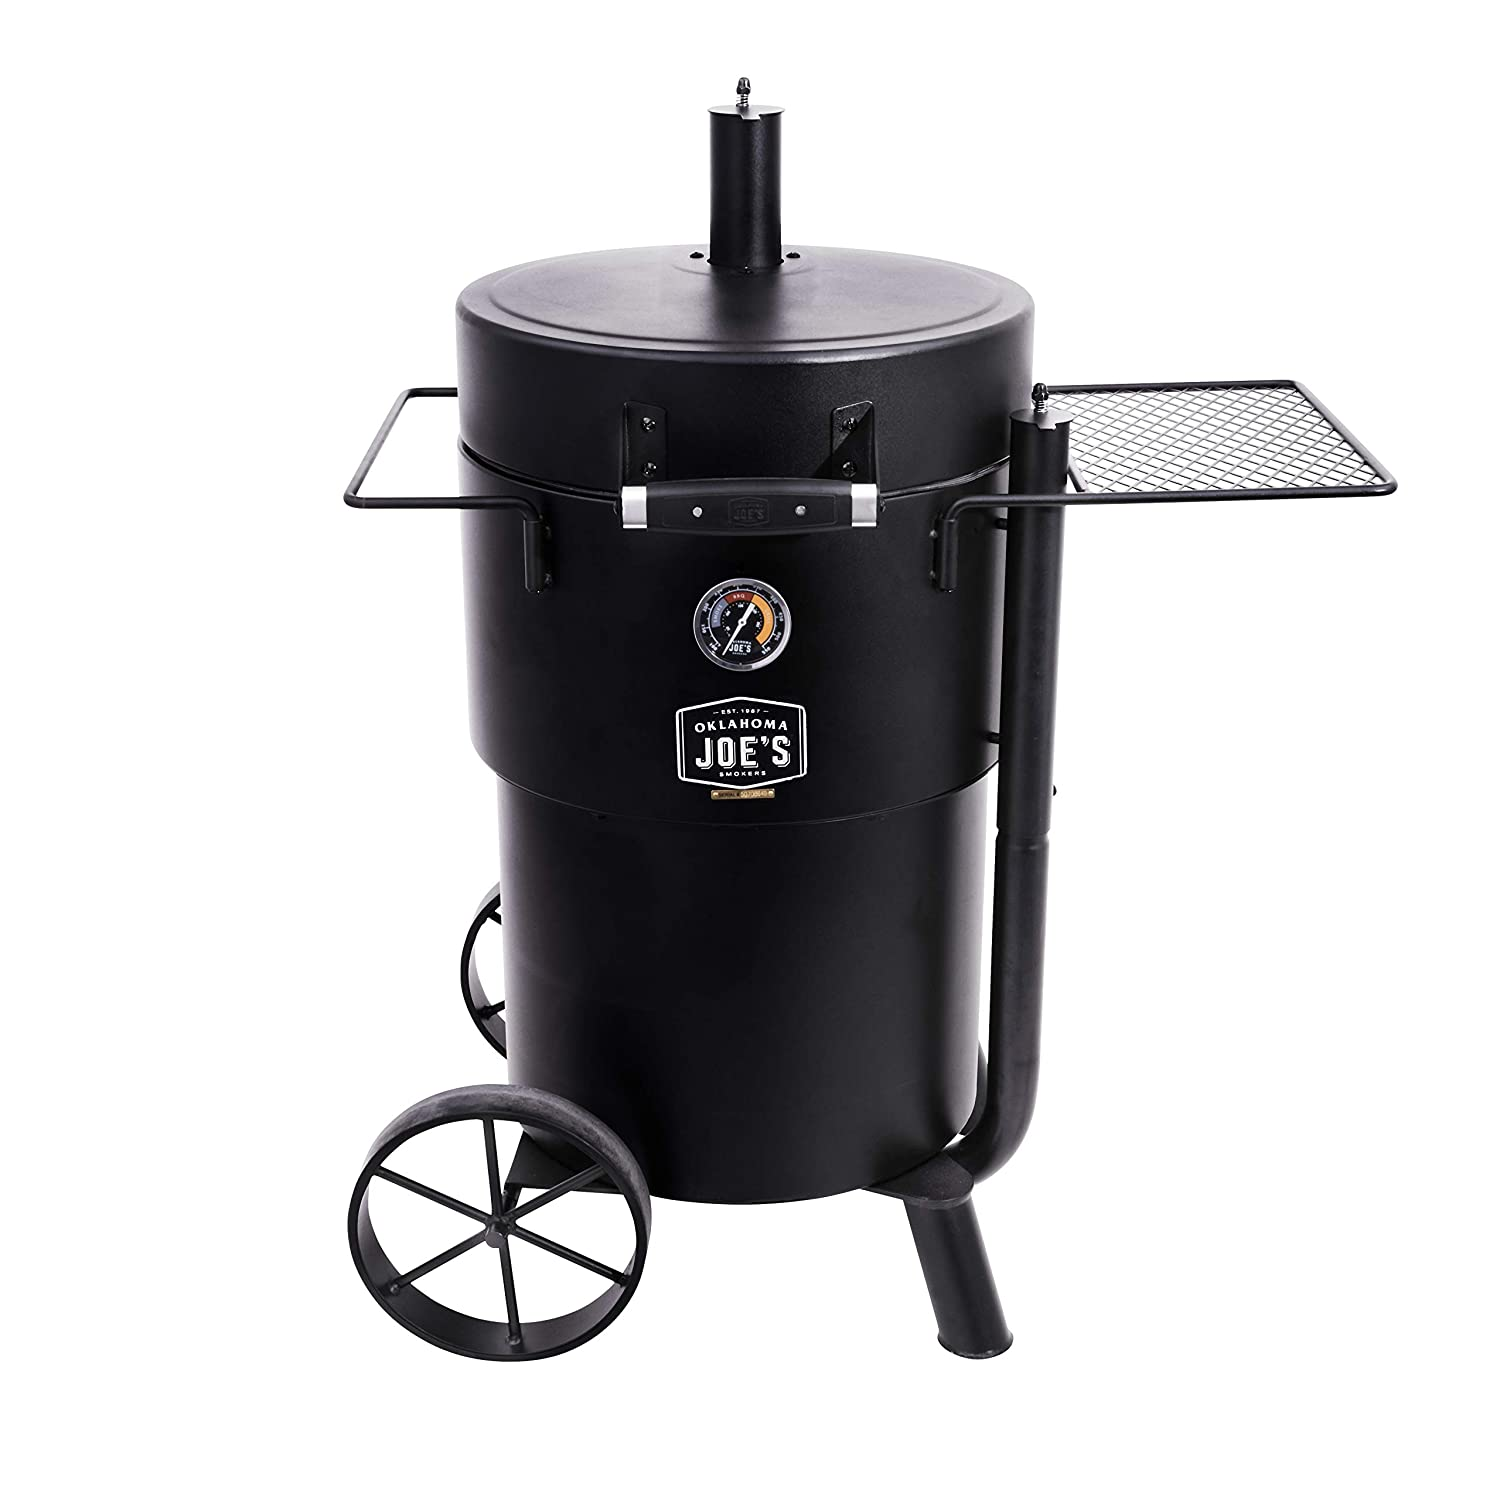 Oklahoma Joe s 19202089 Bronco Charcoal Smoker, Black